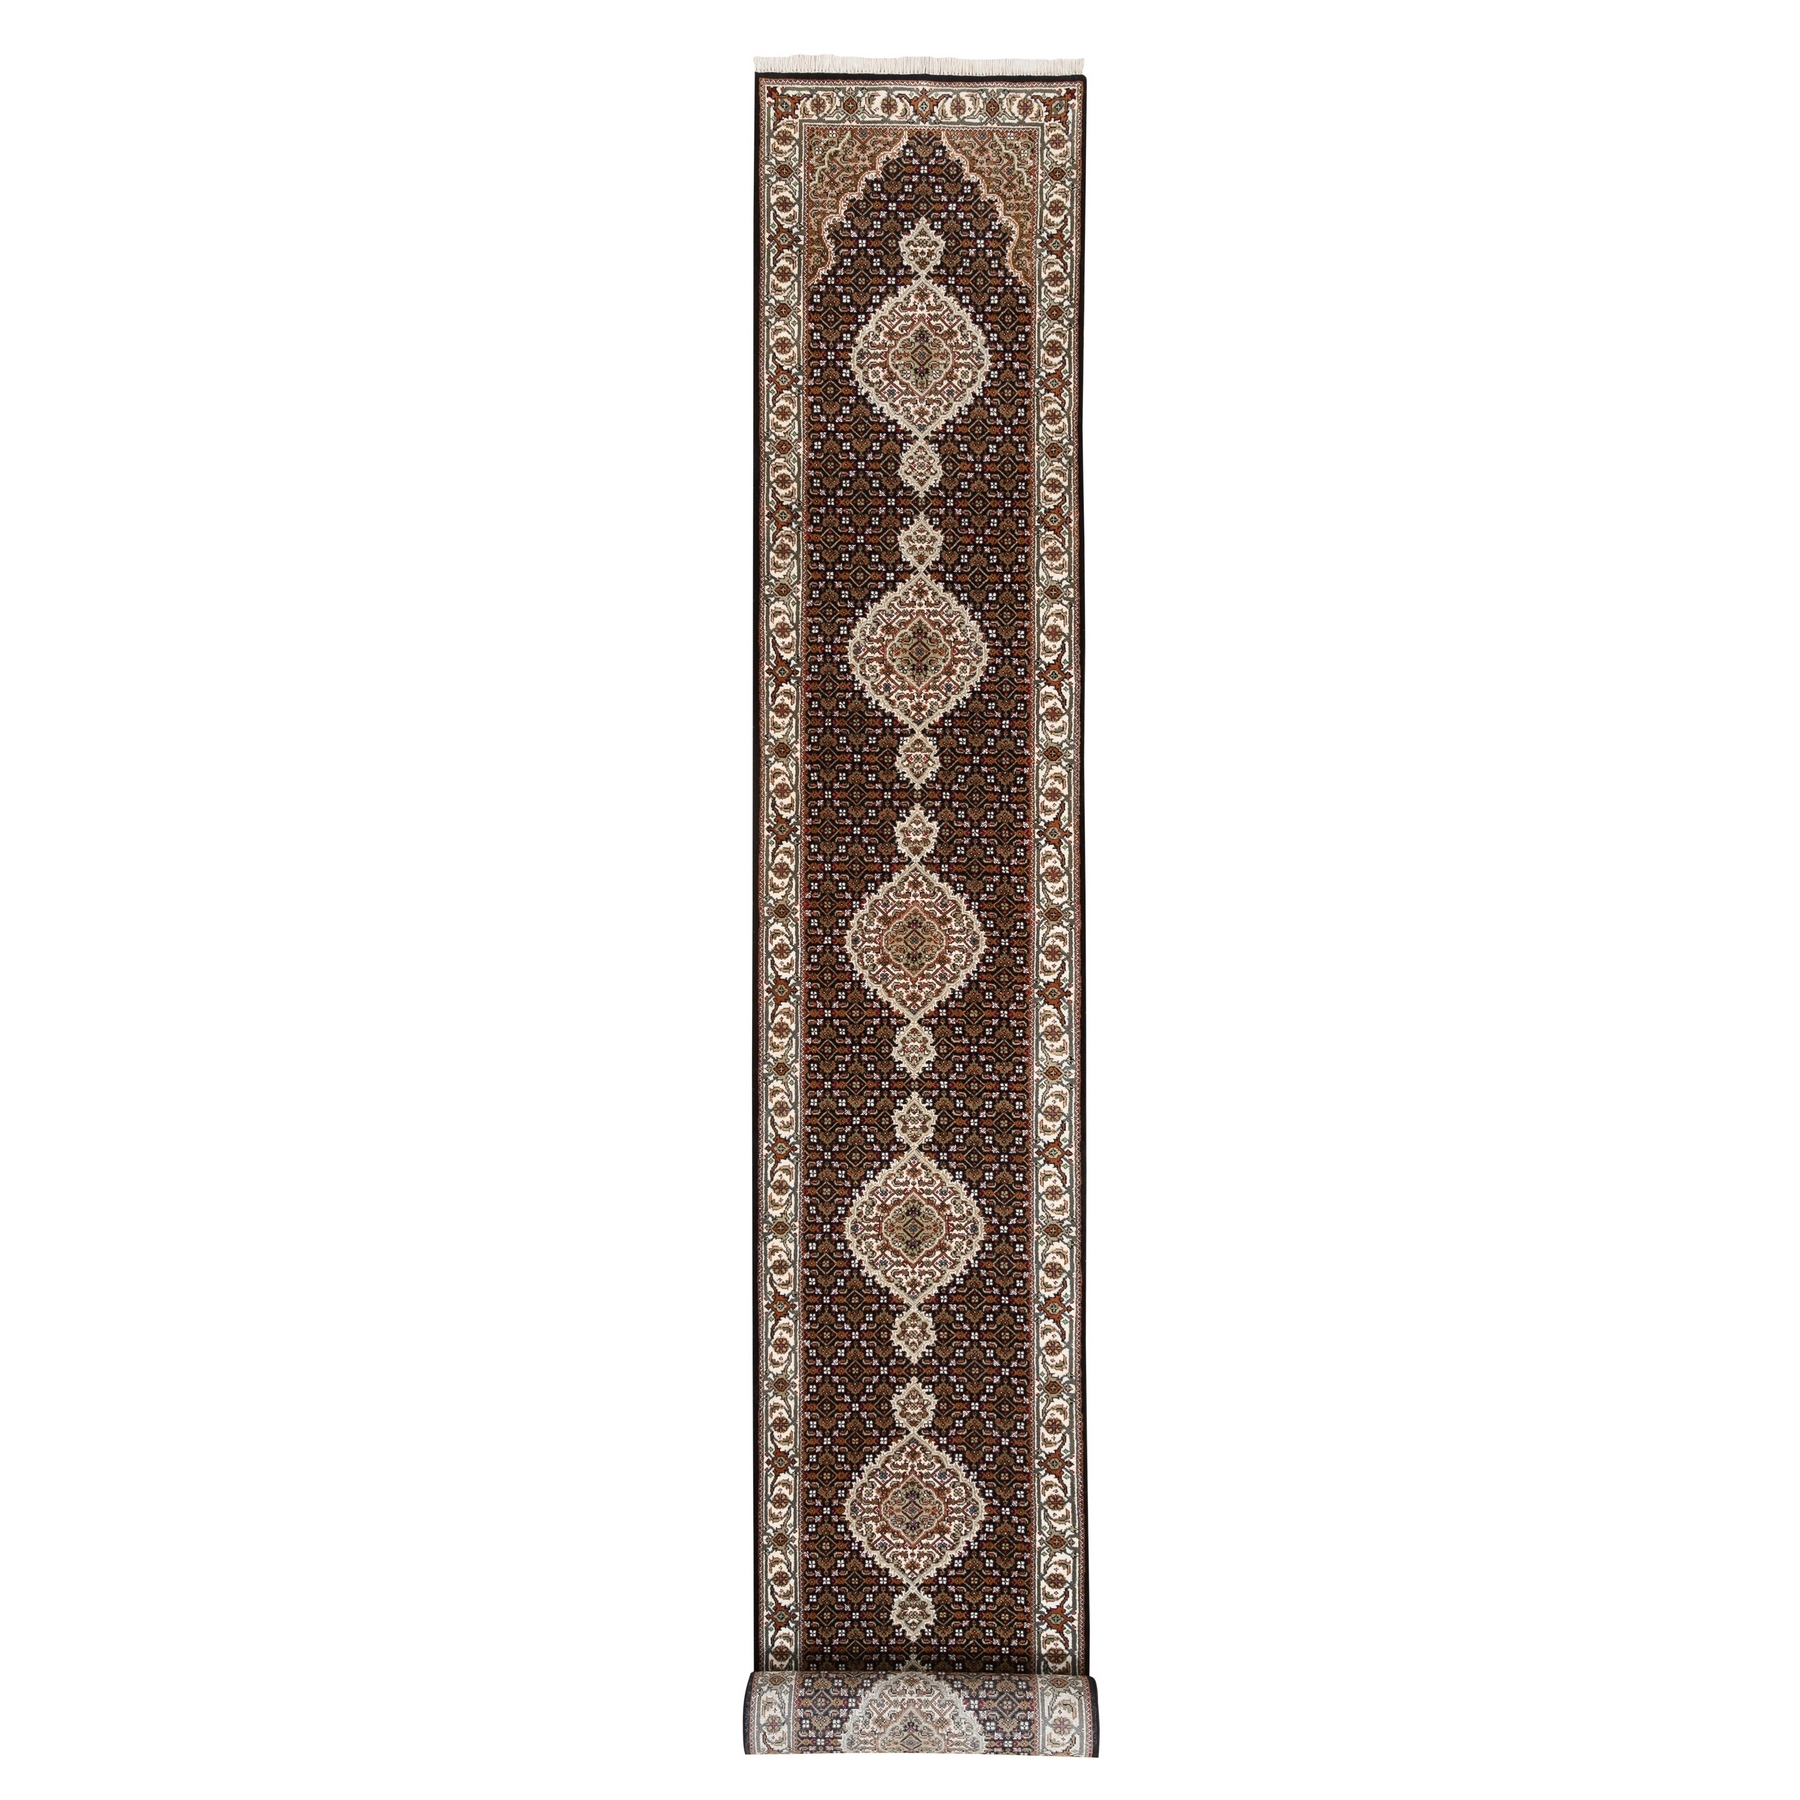 Pirniakan Collection Hand Knotted Black Rug No: 1124970